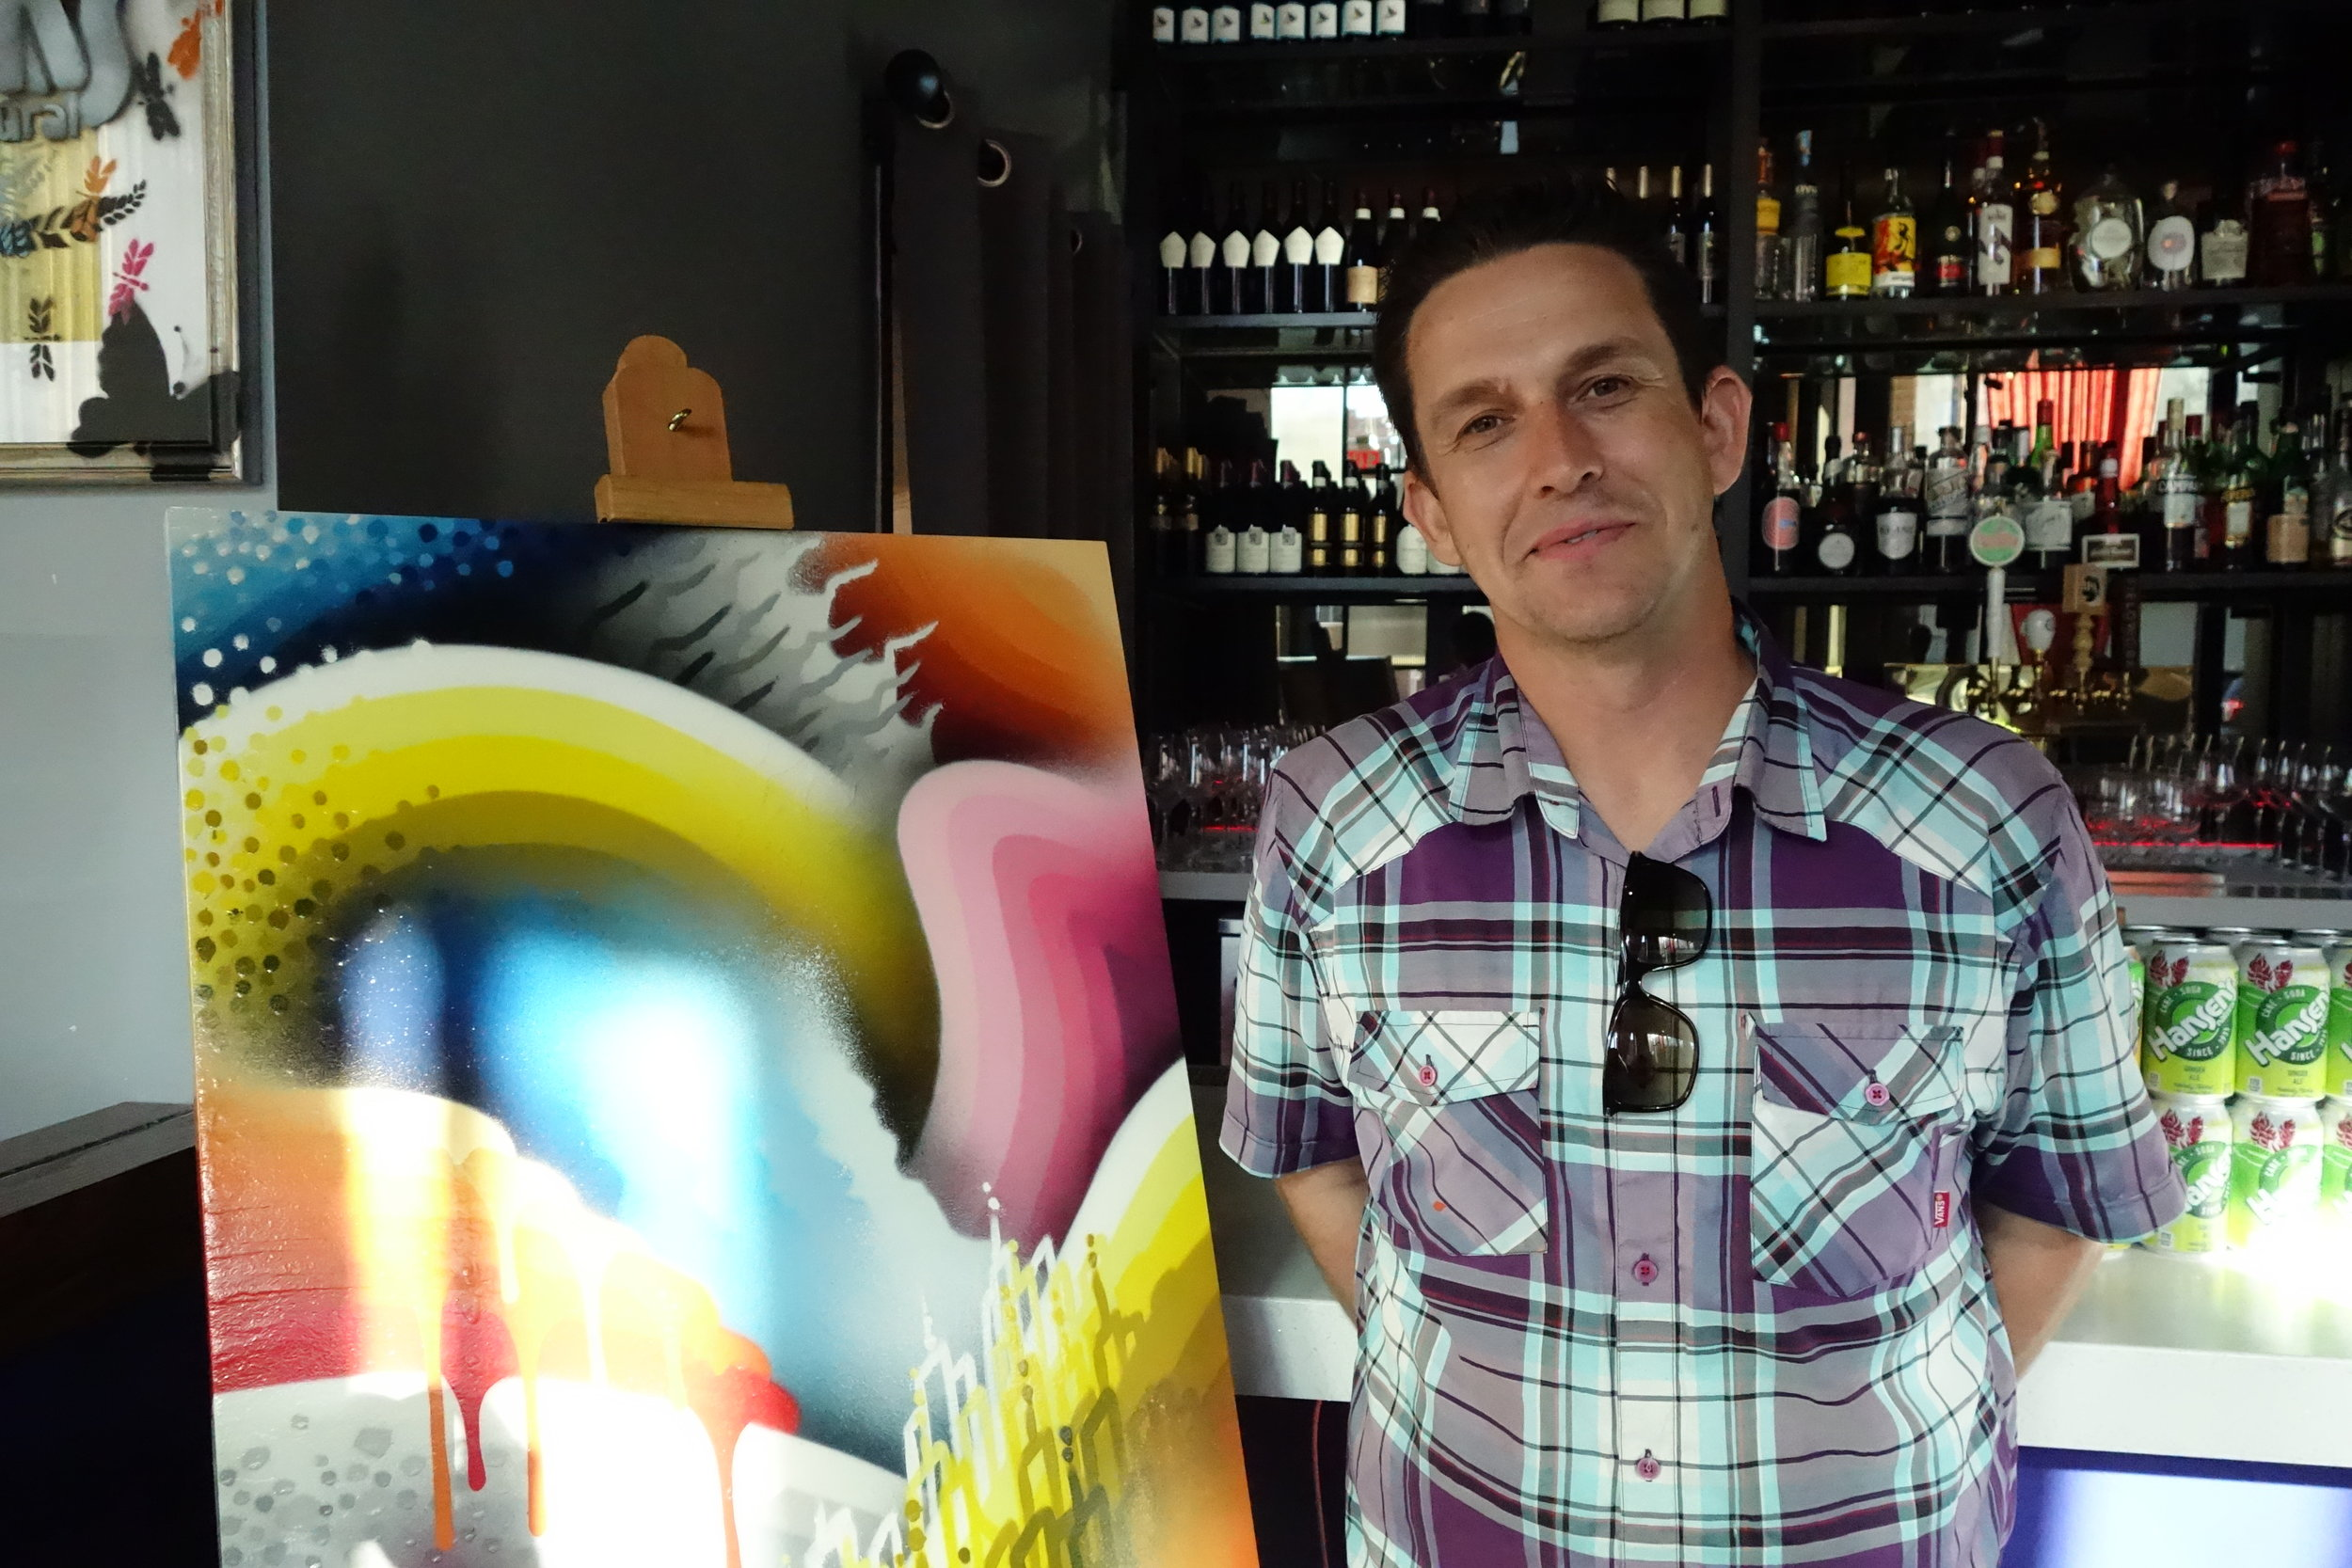 Local artist Ricky Watts poses in front of his artwork at Rooh SF in SoMa.